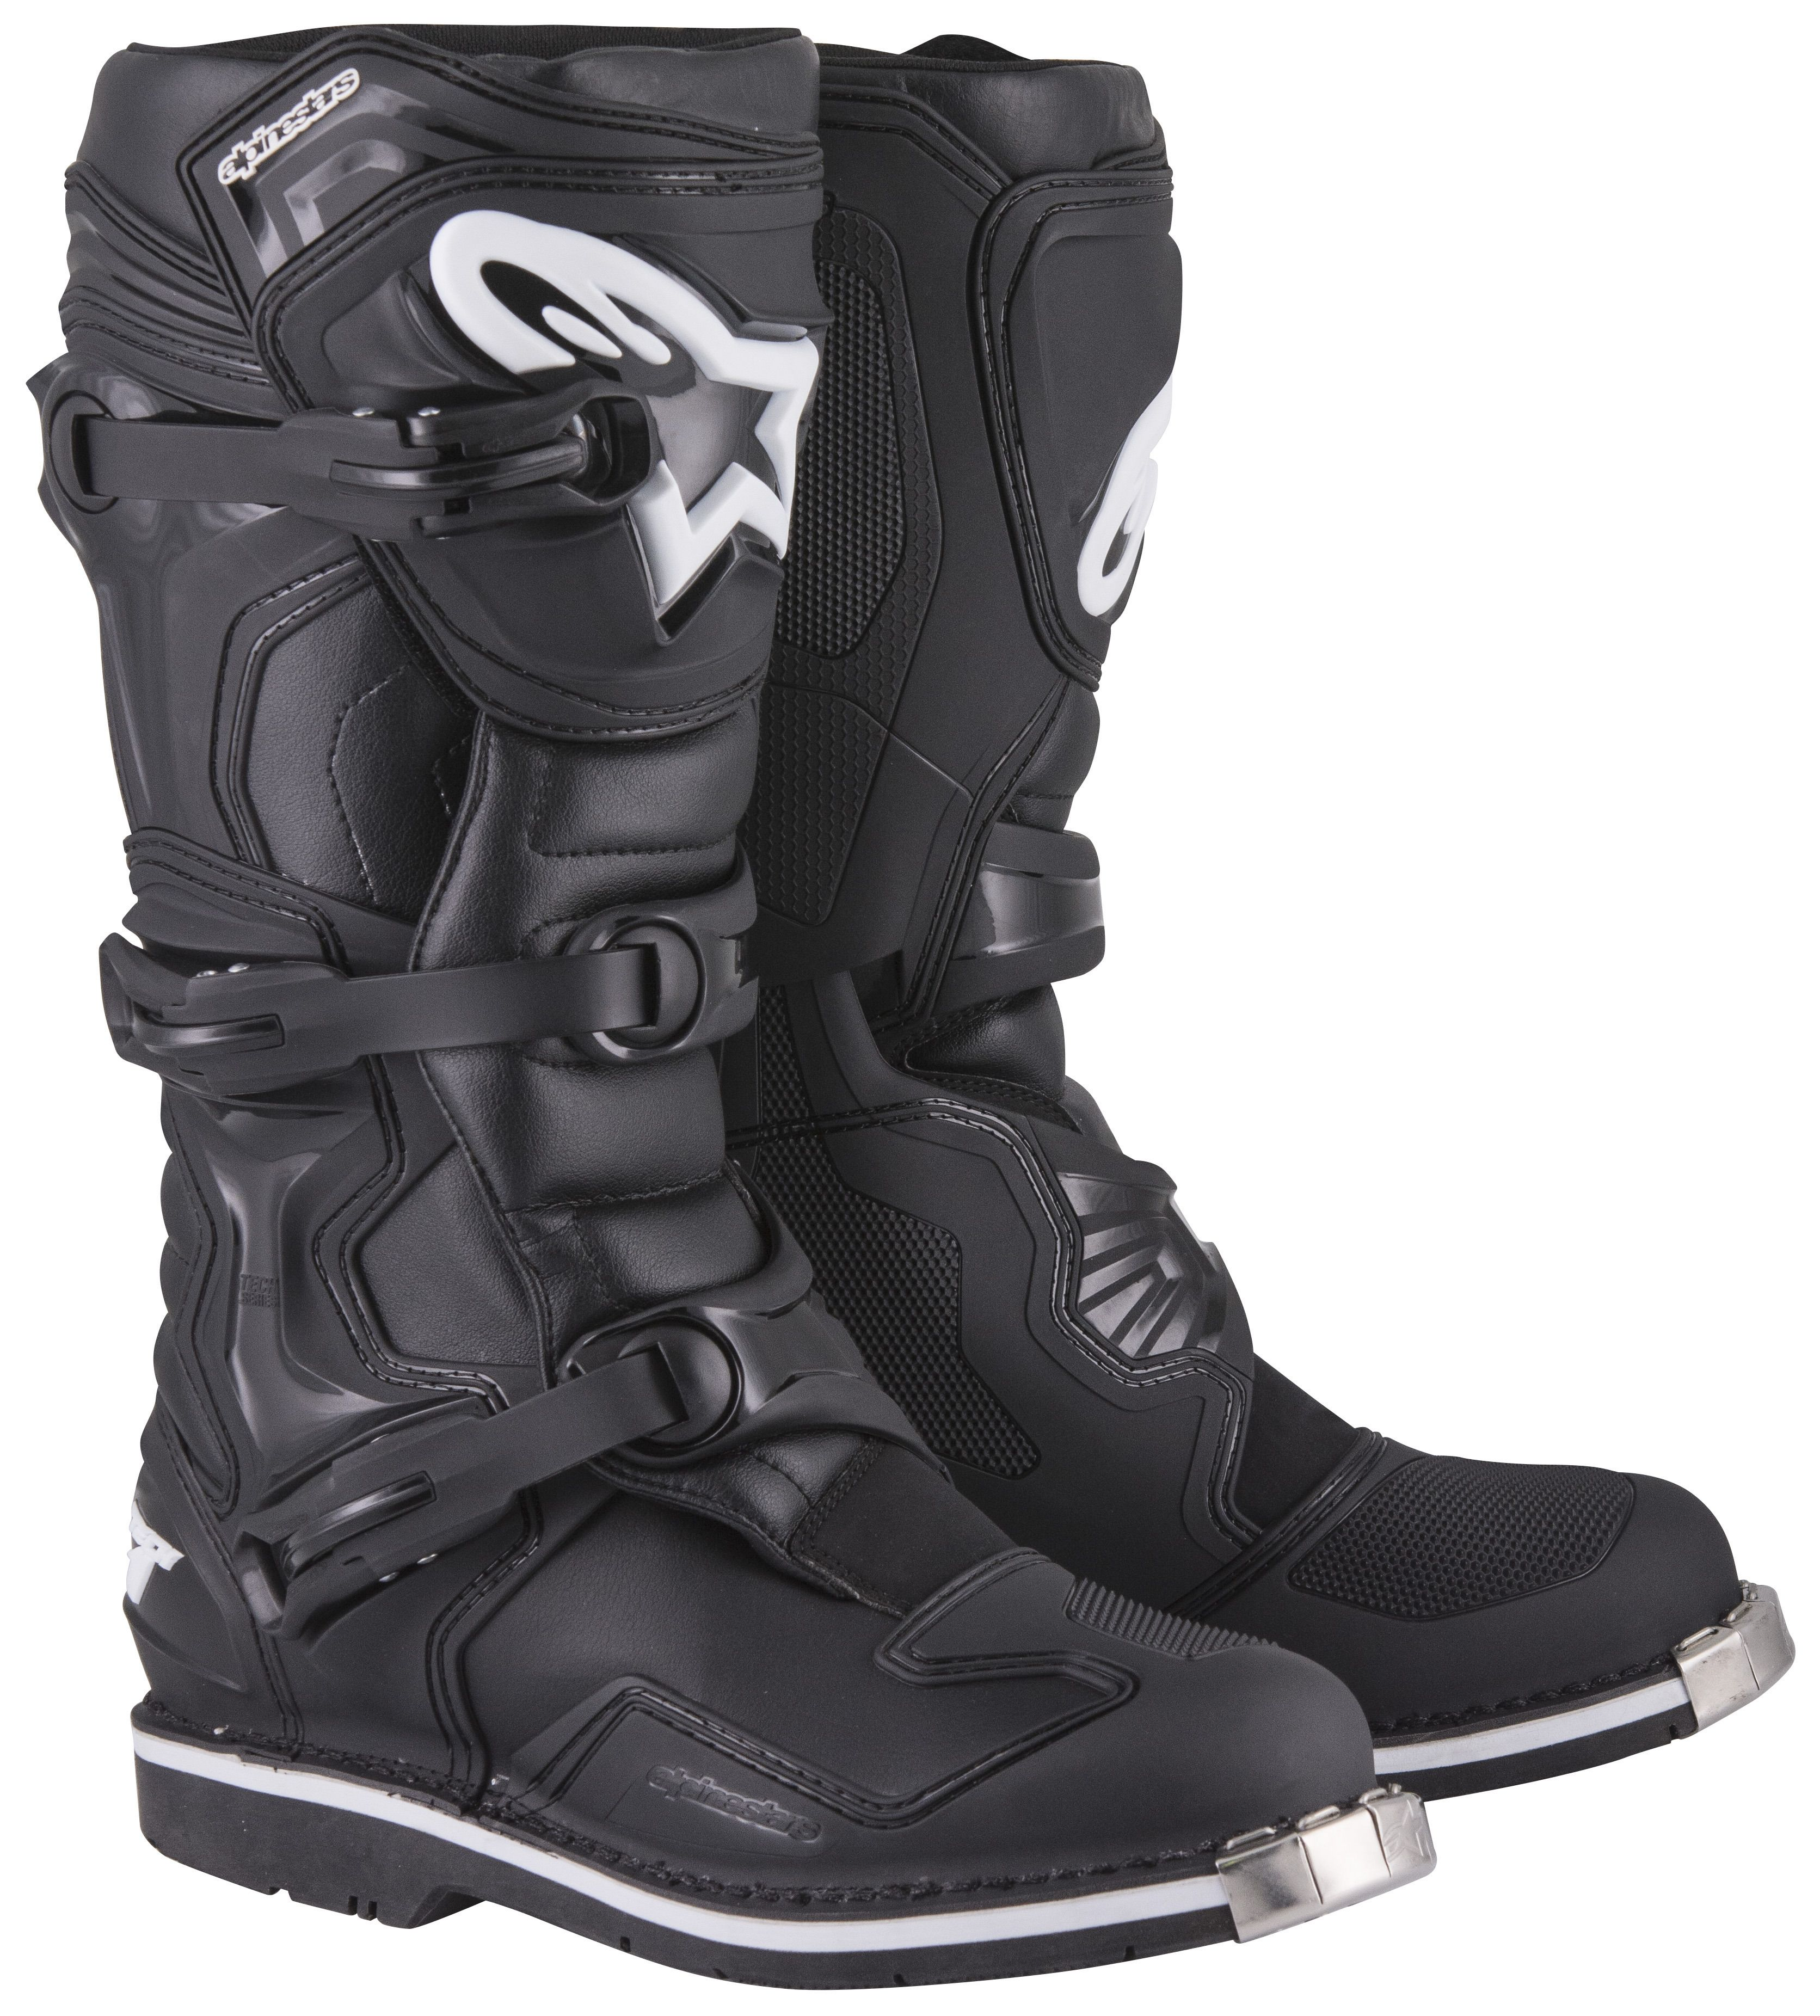 Alpine Motorcycle Gear >> Alpinestars Tech 1 Boots - RevZilla